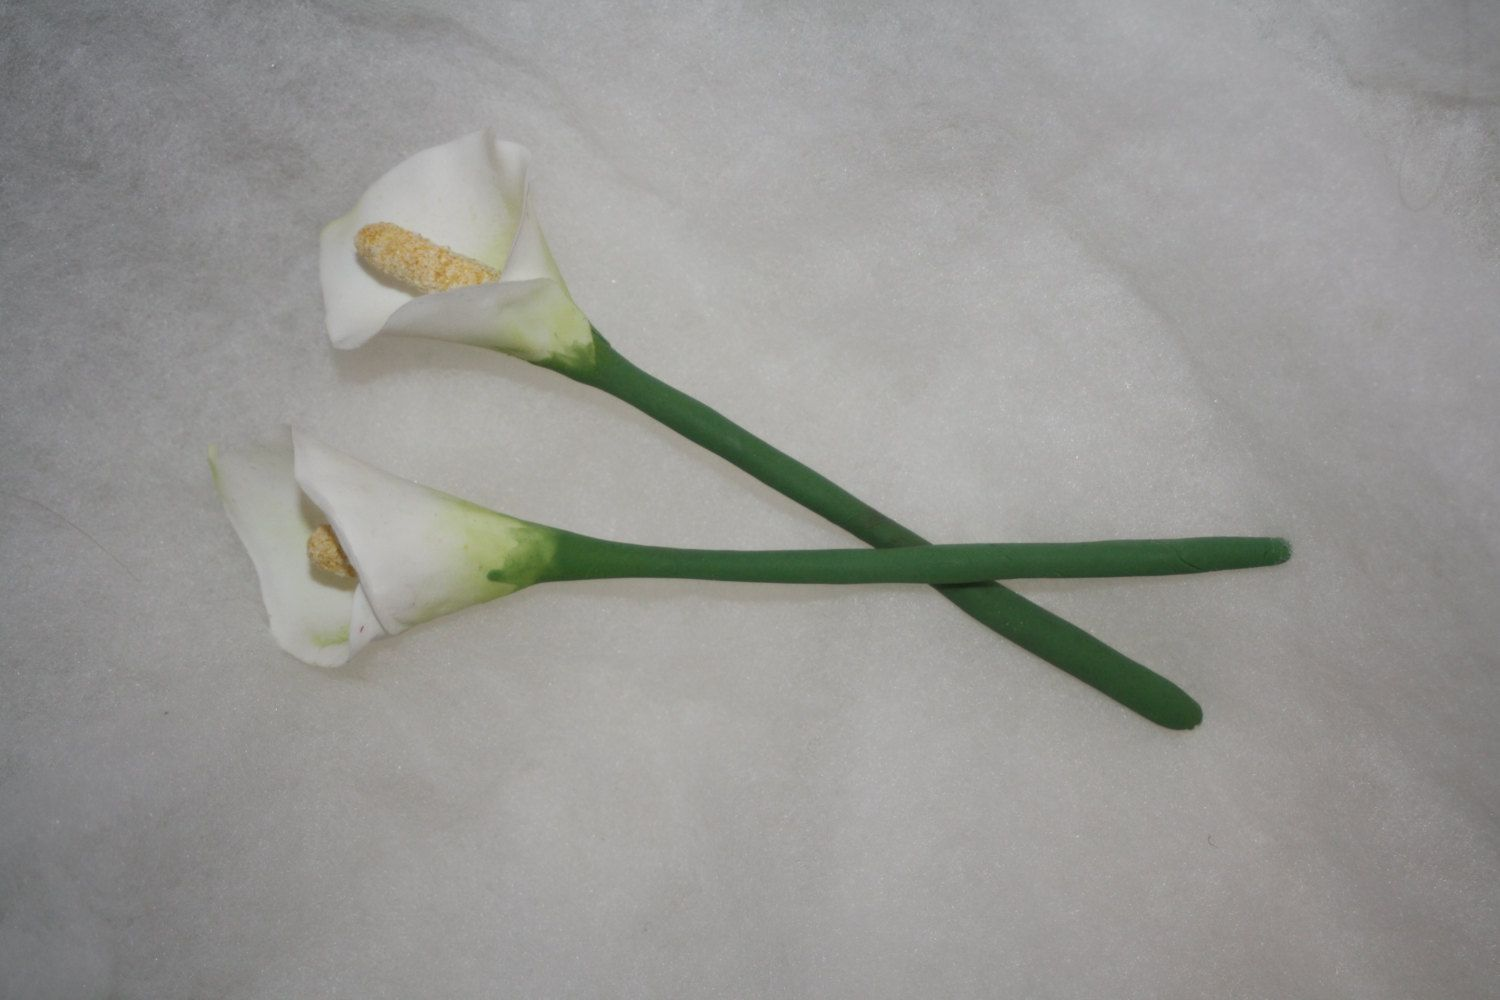 Calla lily flower by foreverflowersplus on etsy now for sale in your calla lily flower by foreverflowersplus on etsy now for sale in your choice of colors and izmirmasajfo